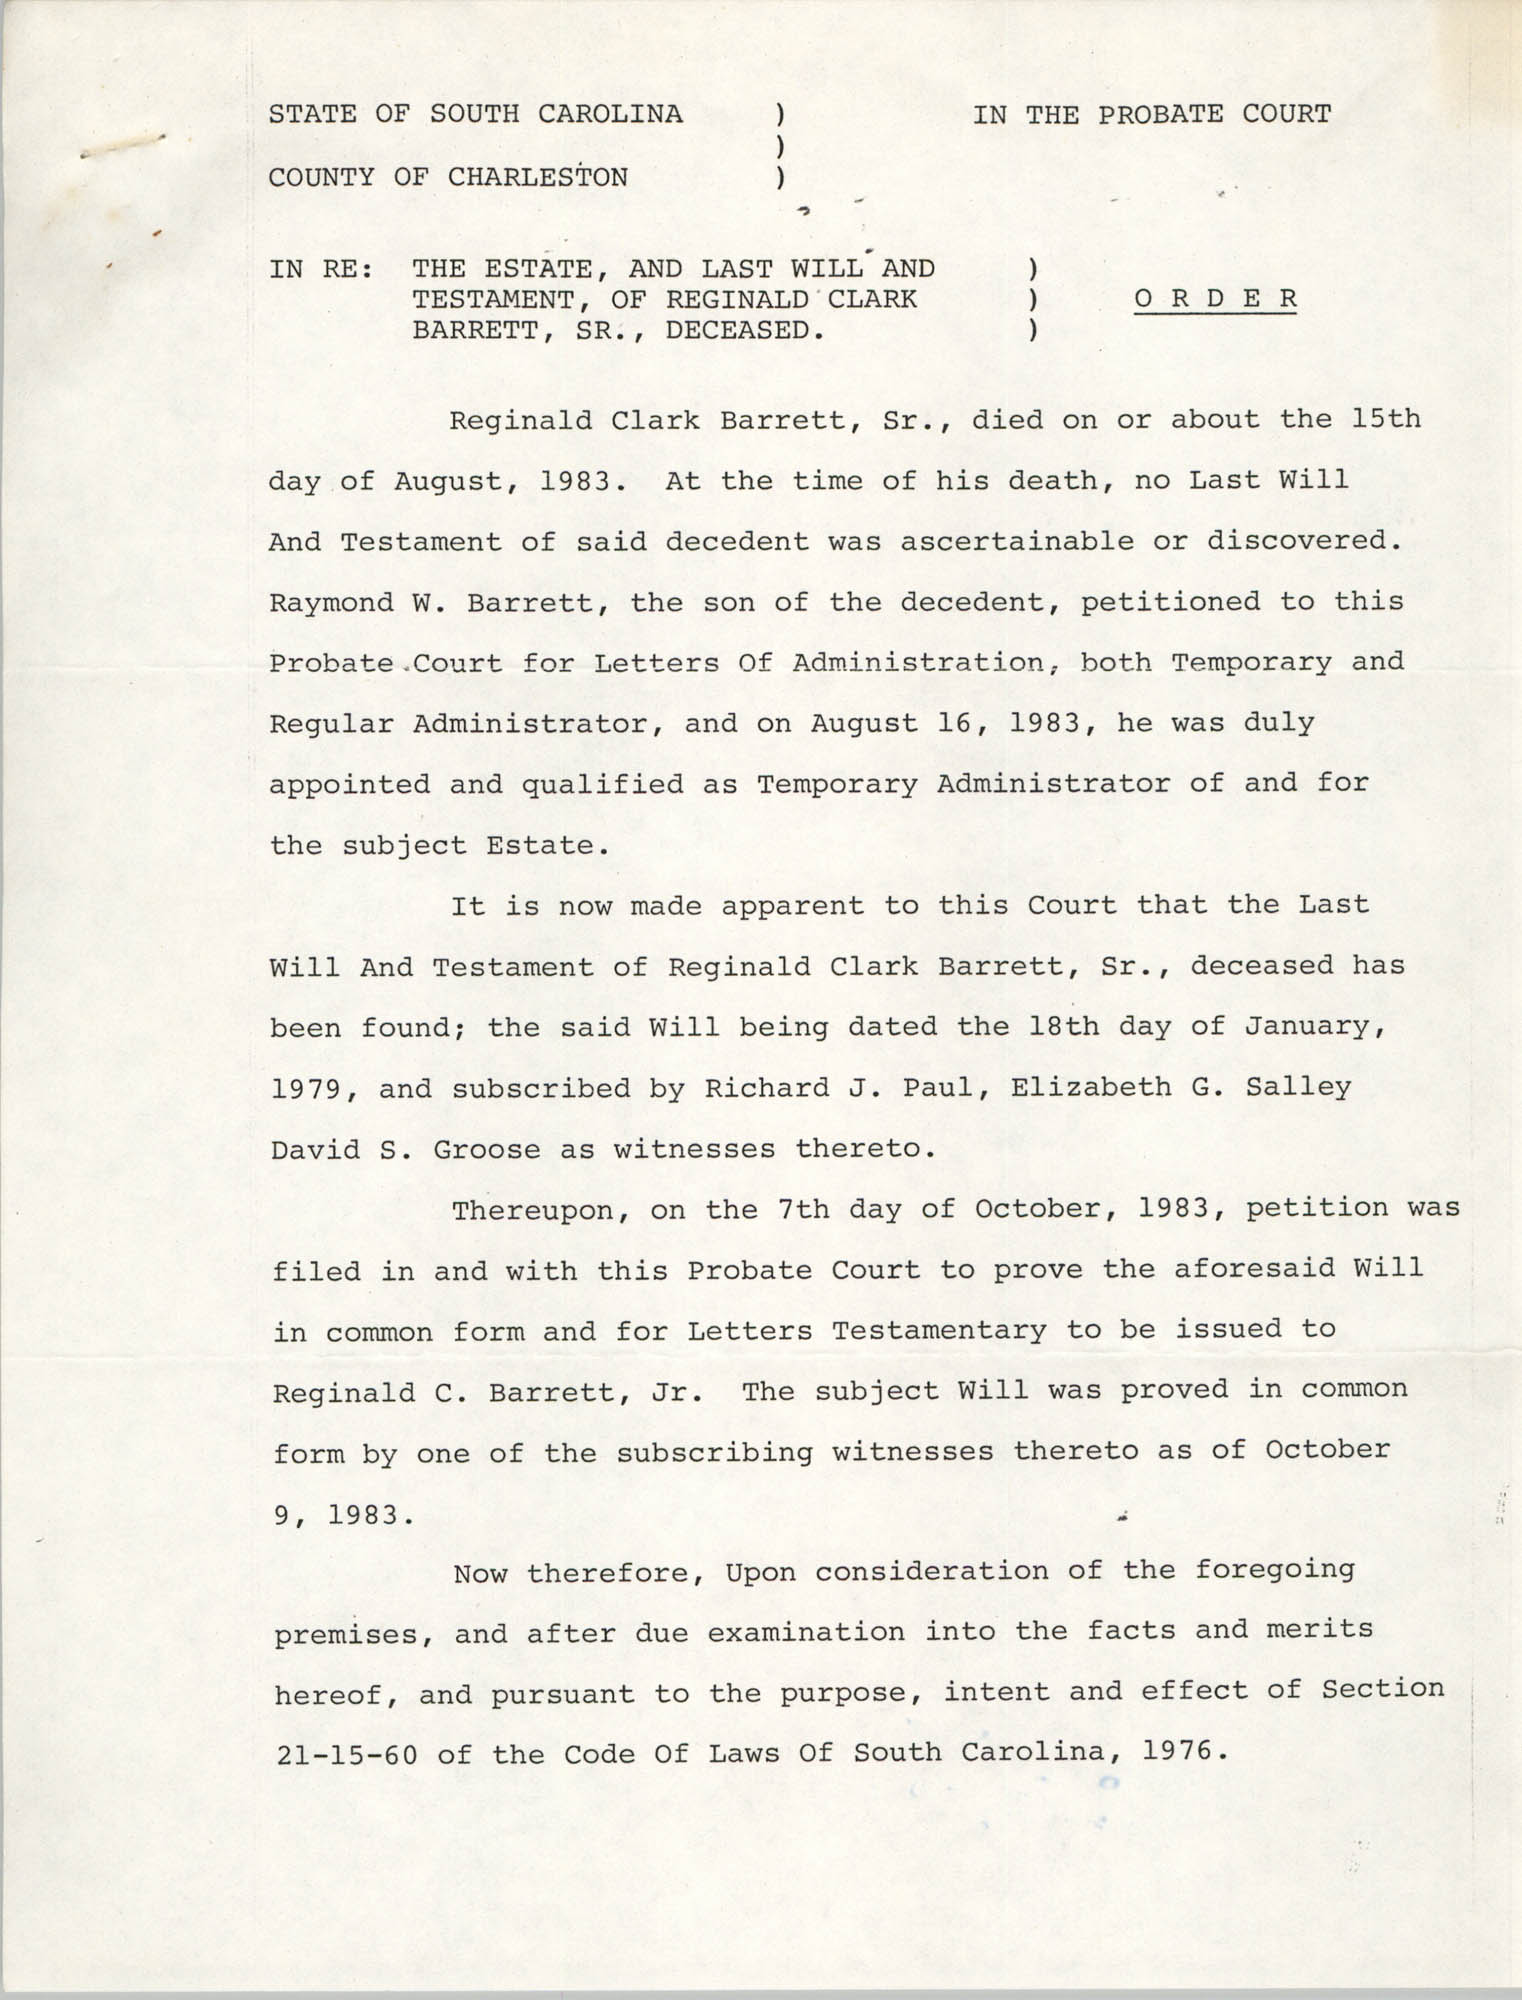 Order, Probate Court, State of South Carolina, Gus. H. Pearlman, October 7, 1983